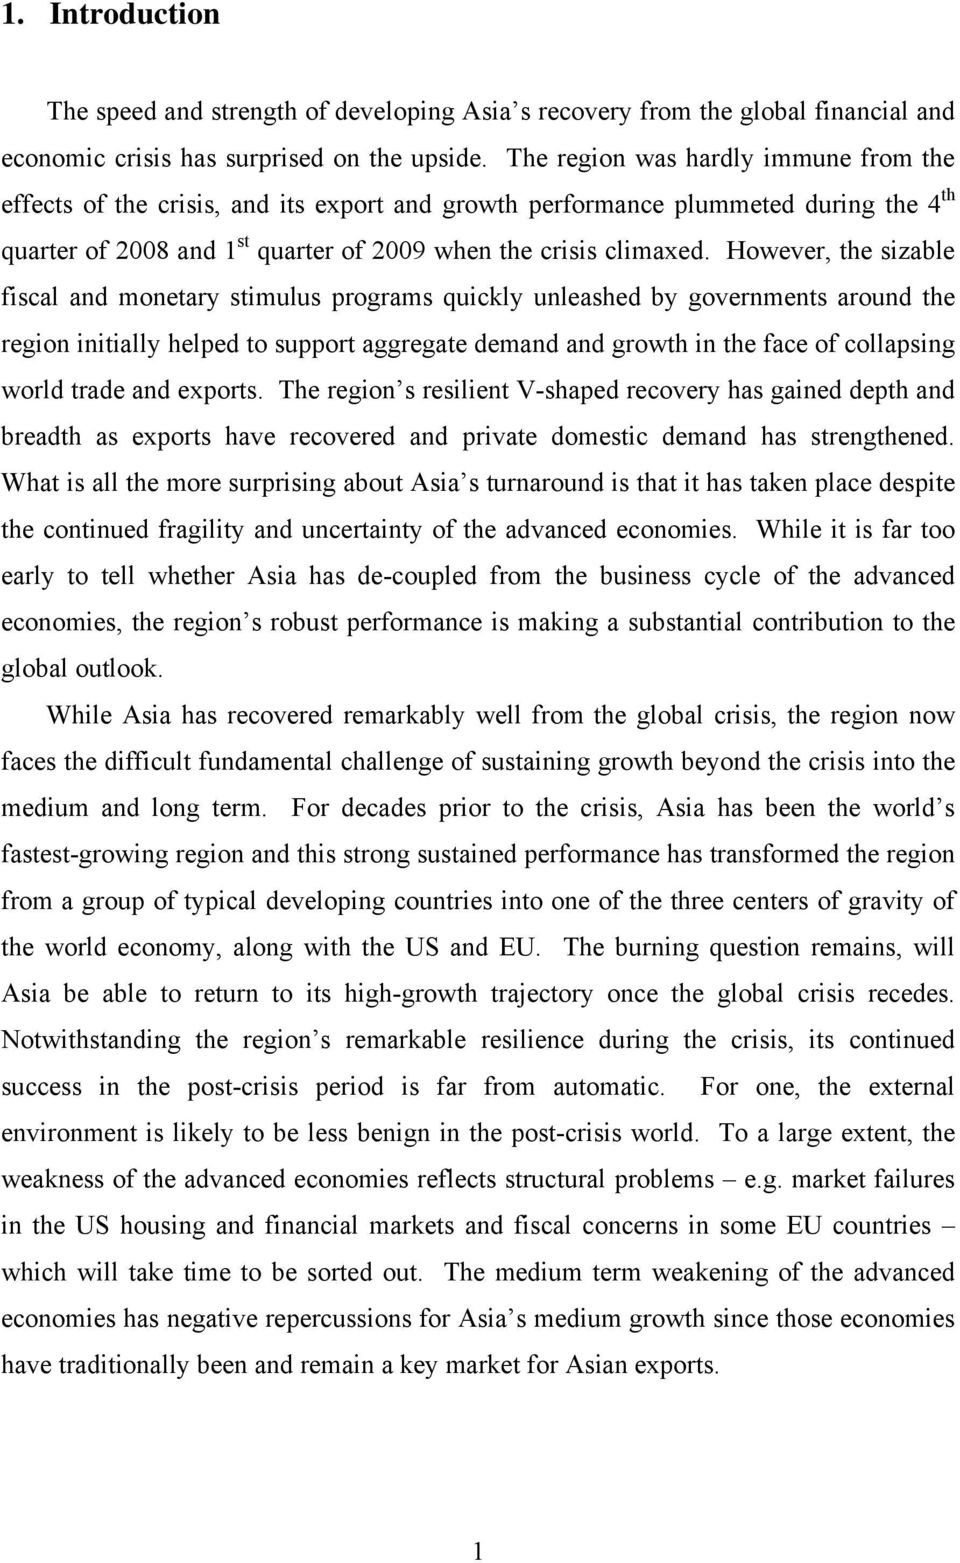 However, the sizable fiscal and monetary stimulus programs quickly unleashed by governments around the region initially helped to support aggregate demand and growth in the face of collapsing world